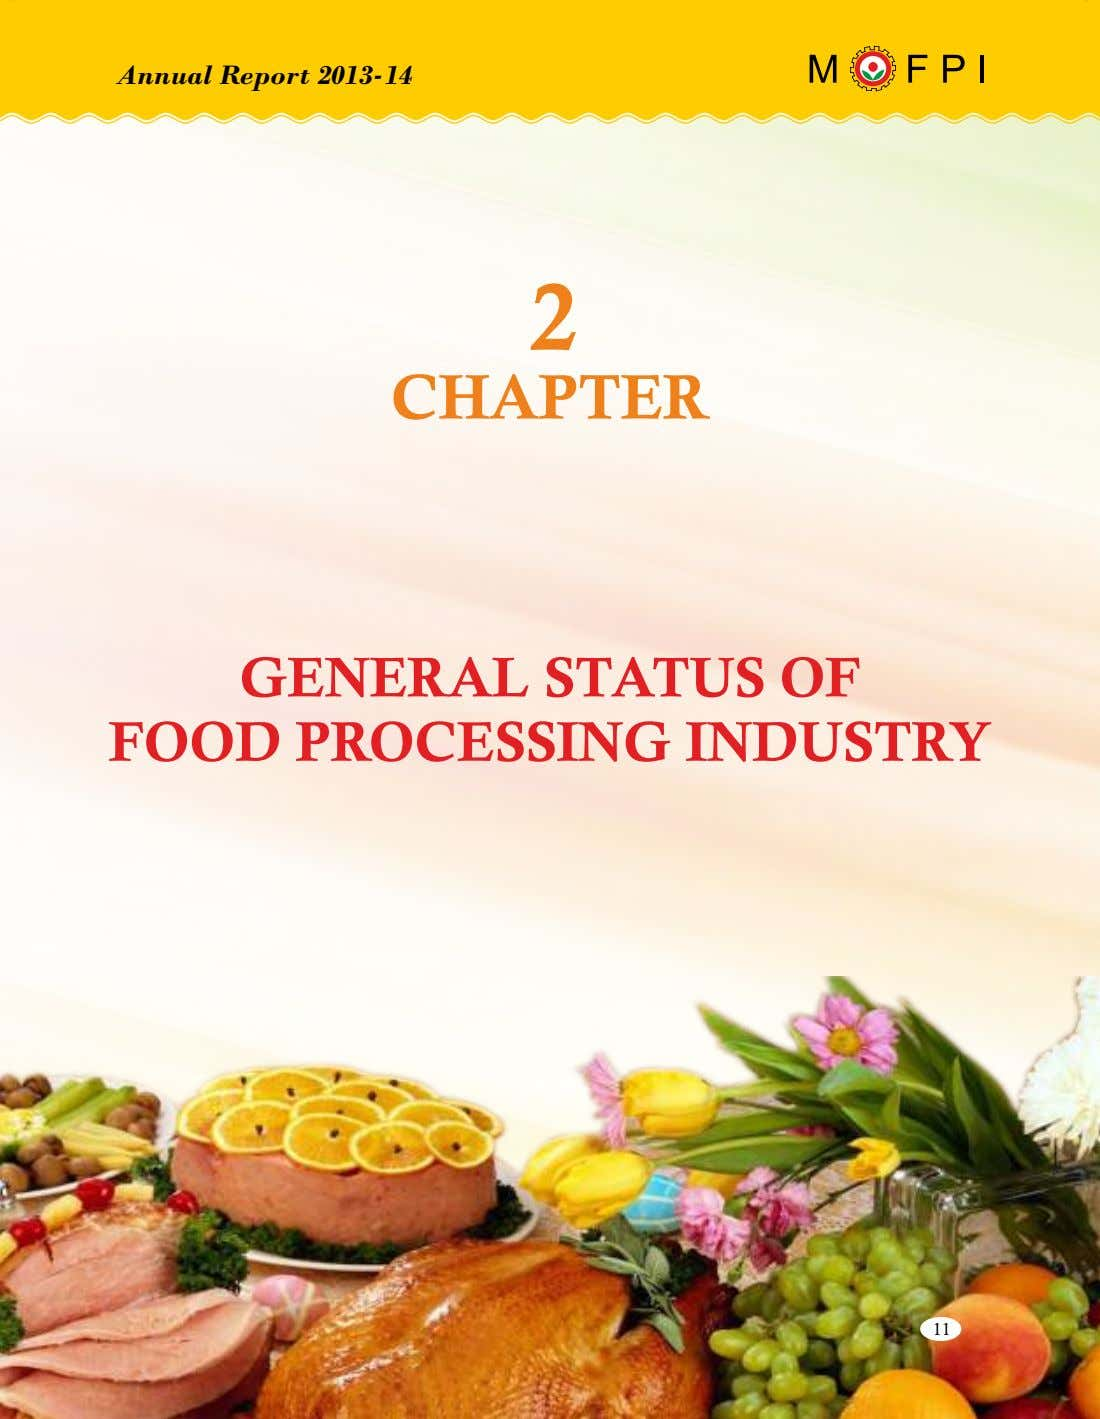 Annual Report 2013-14 2 CHAPTER GENERAL STATUS OF FOOD PROCESSING INDUSTRY 11